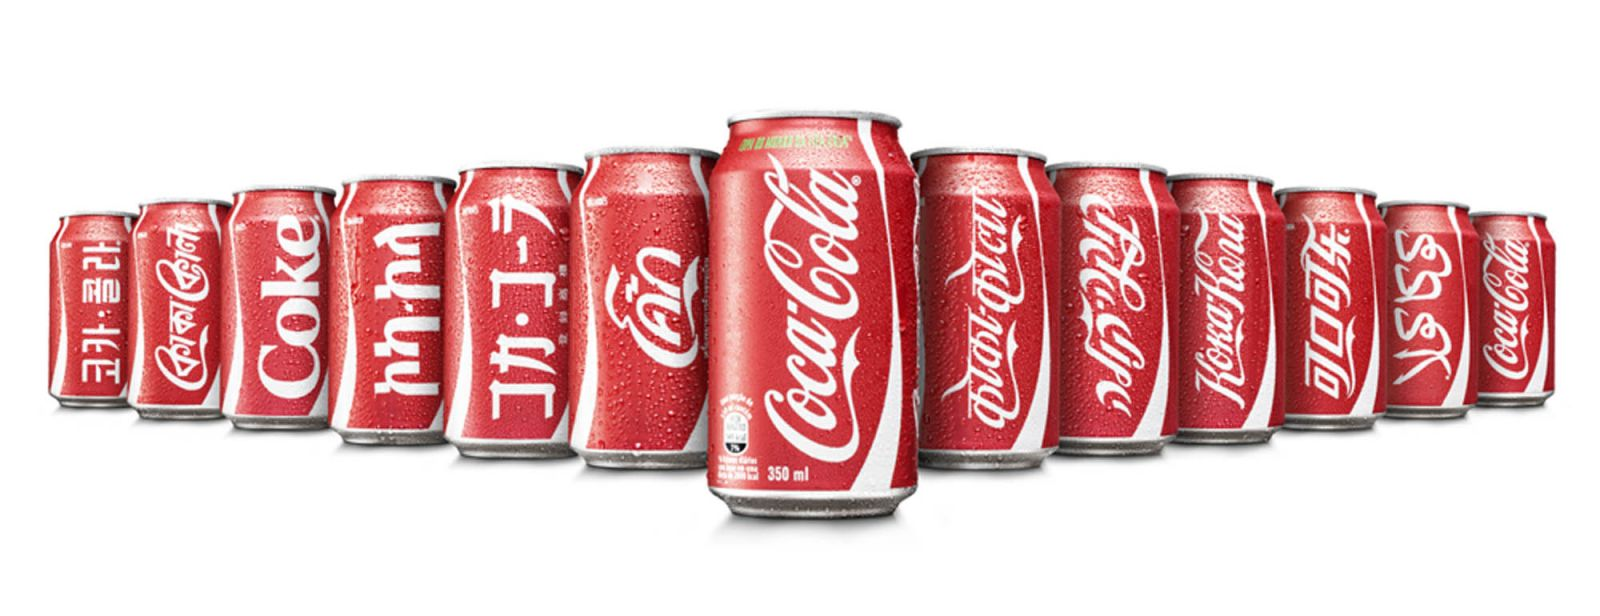 coca cola s marketing challenges in brazil case questions